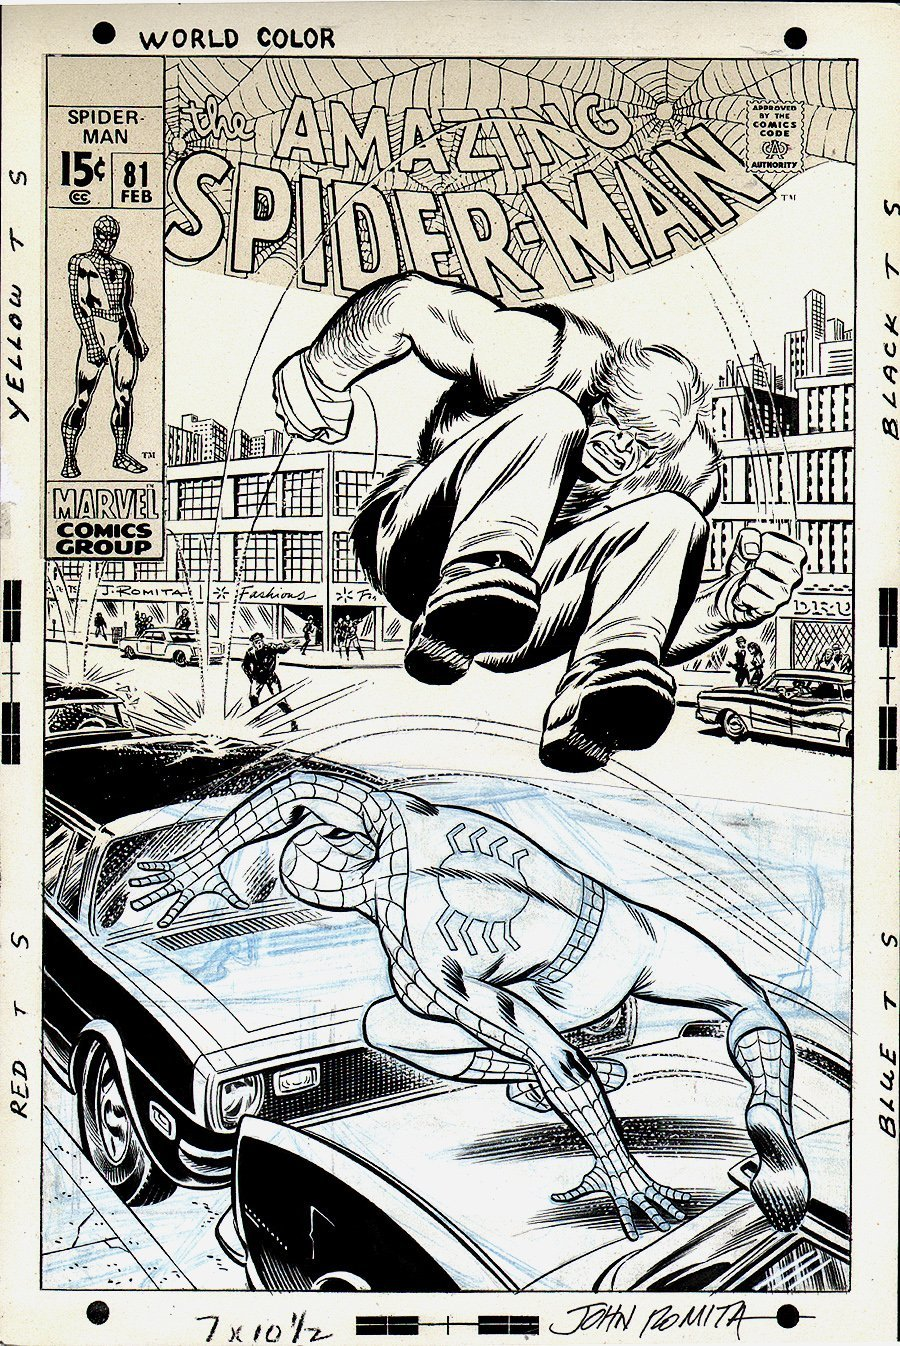 Amazing Spider-Man #81 Un-Published Cover (1969) SOLD SOLD SOLD!